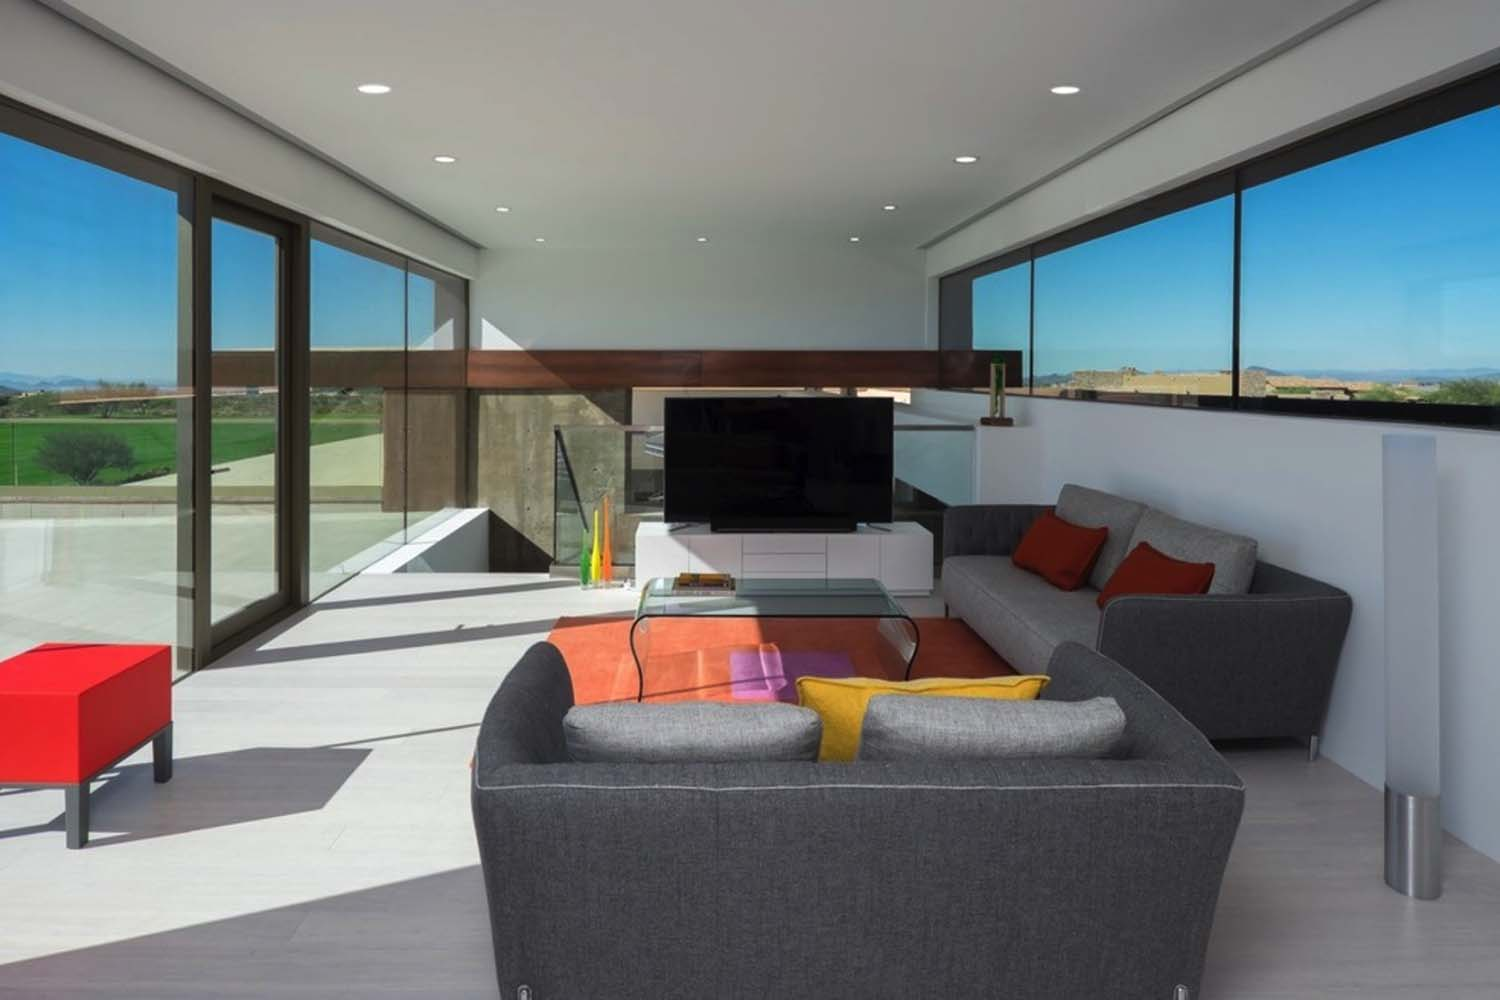 Contemporary Desert Home-Tate Studio Architects-14-1 Kindesign